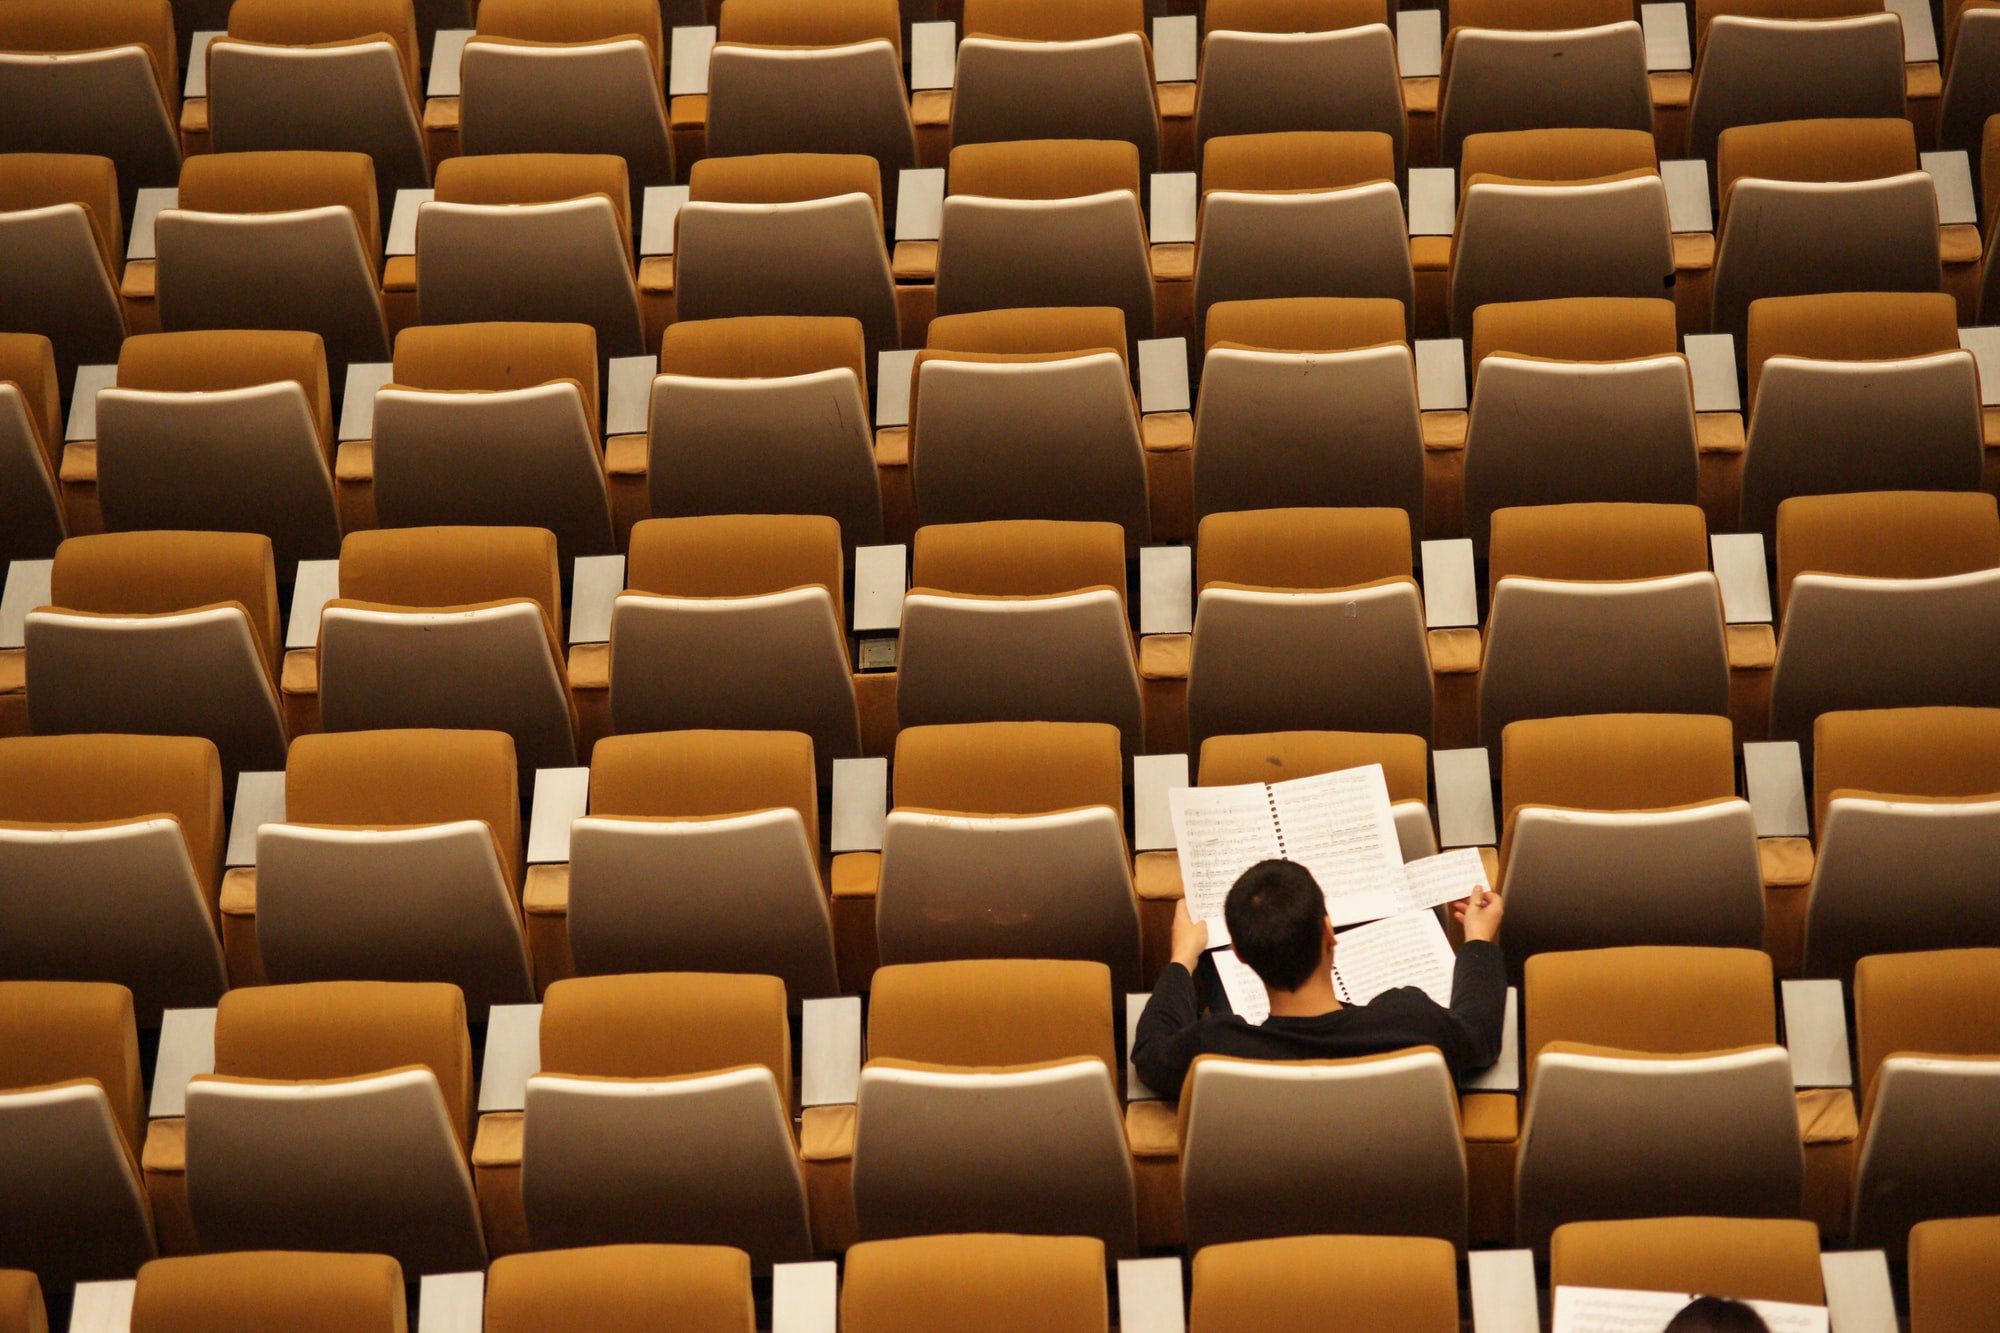 """Student studying in a lecture hall—Photo by <a href=""""https://unsplash.com/@flipboo?utm_source=unsplash&utm_medium=referral&utm_content=creditCopyText"""">Philippe Bout</a> on <a href=""""/s/photos/study?utm_source=unsplash&utm_medium=referral&utm_content=creditCopyText"""">Unsplash</a>"""